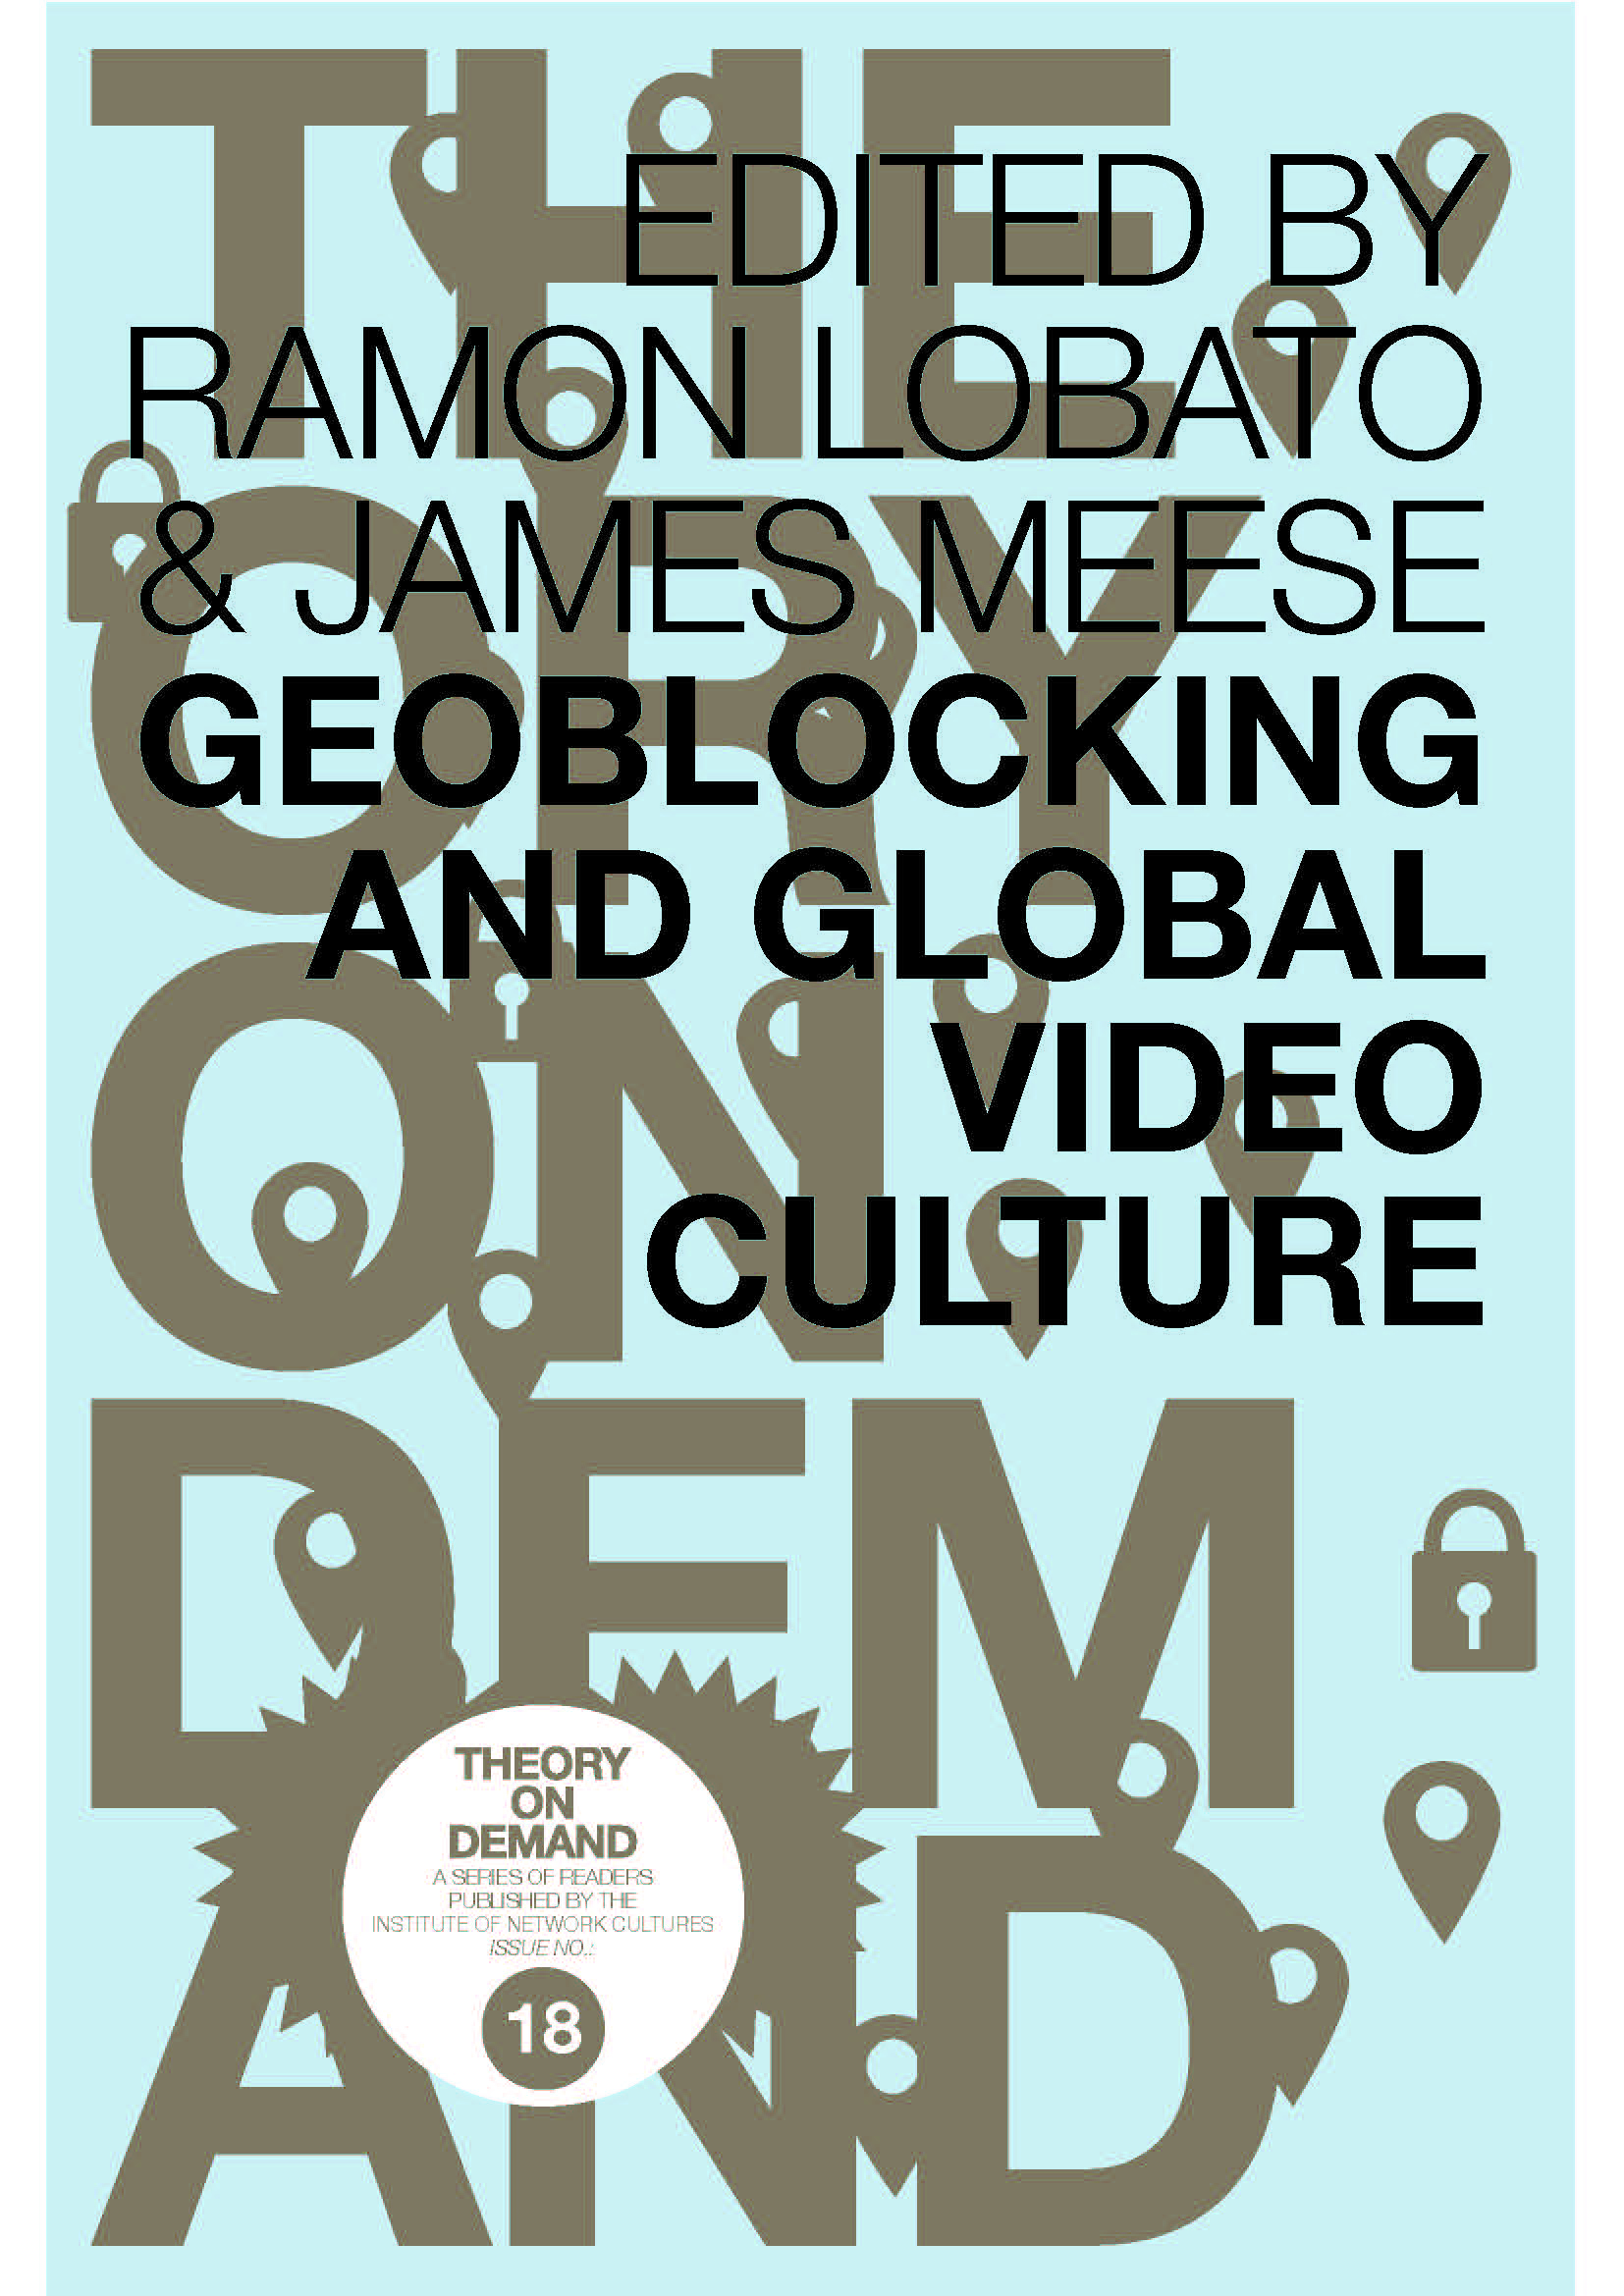 geoblocaking and global video culture cover